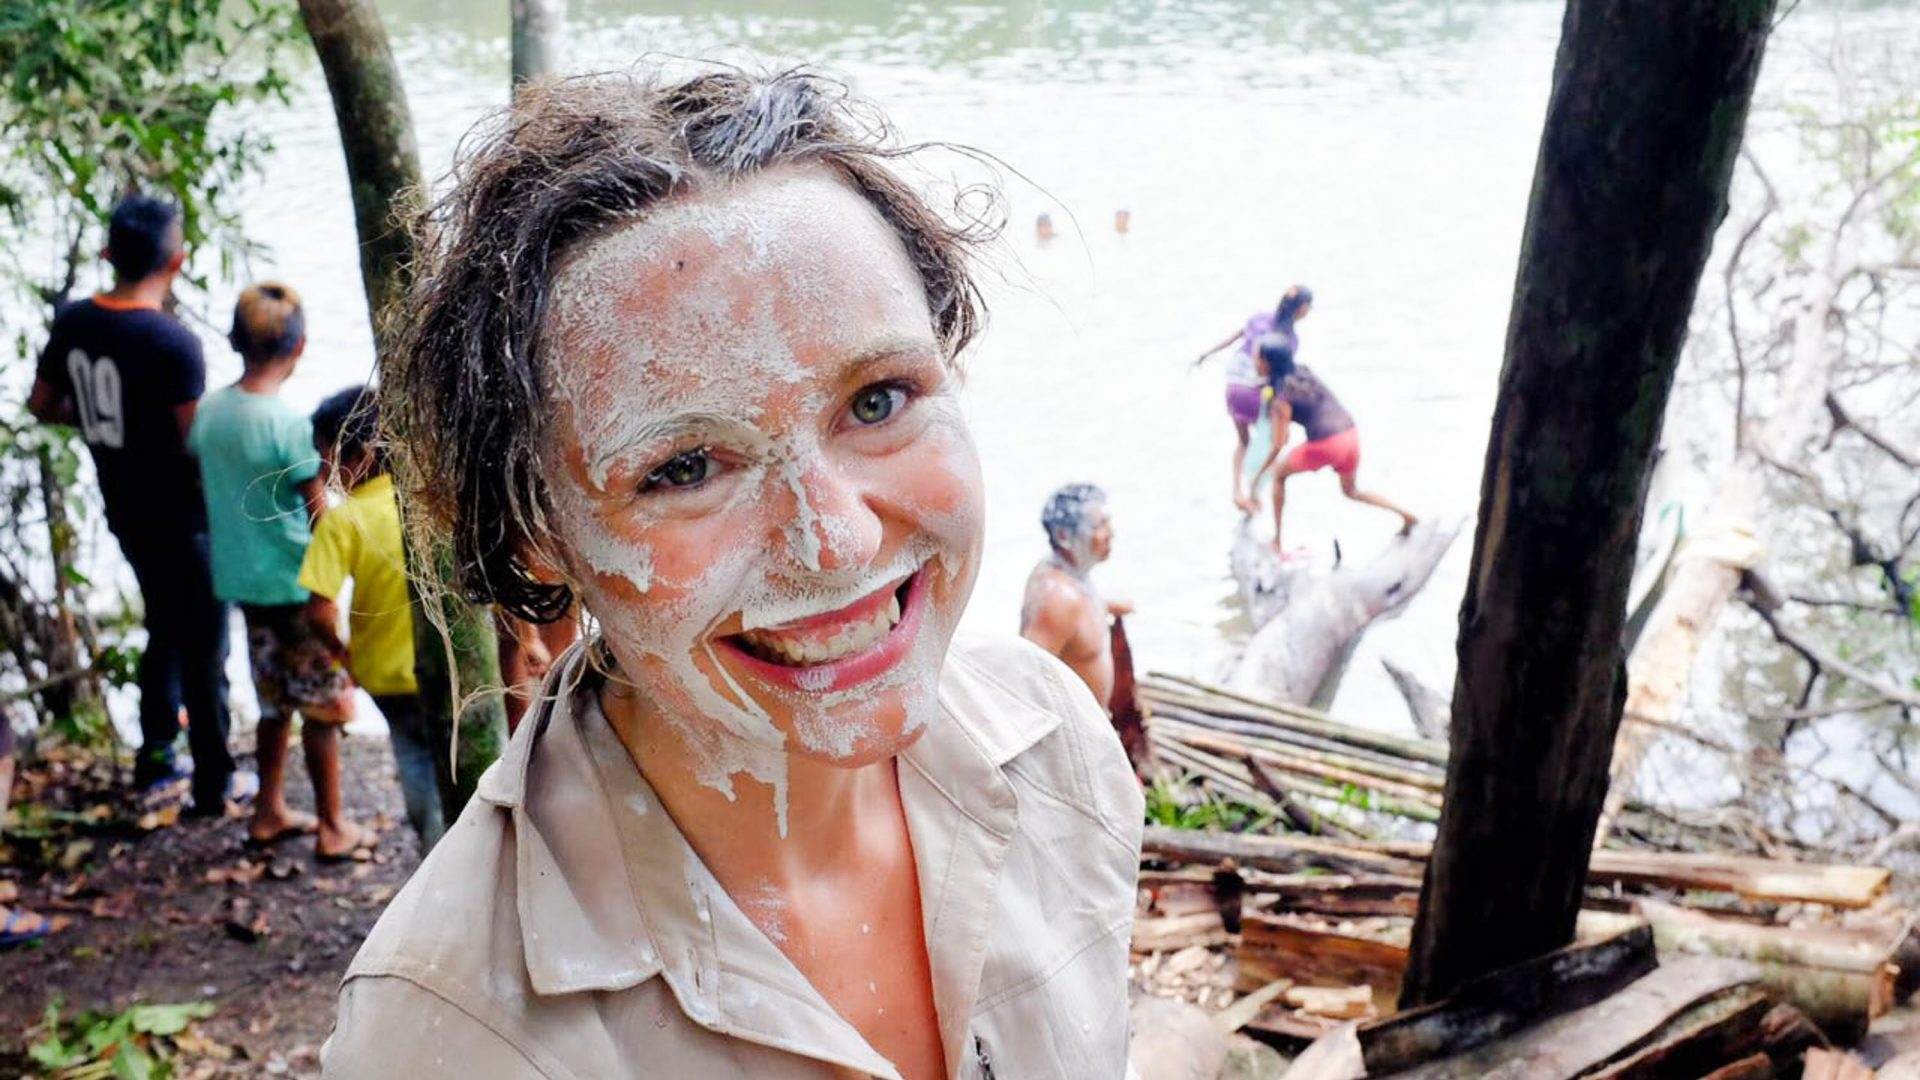 Pip takes part in the annual fishing ritual of the Munduruku tribe in Brazil.